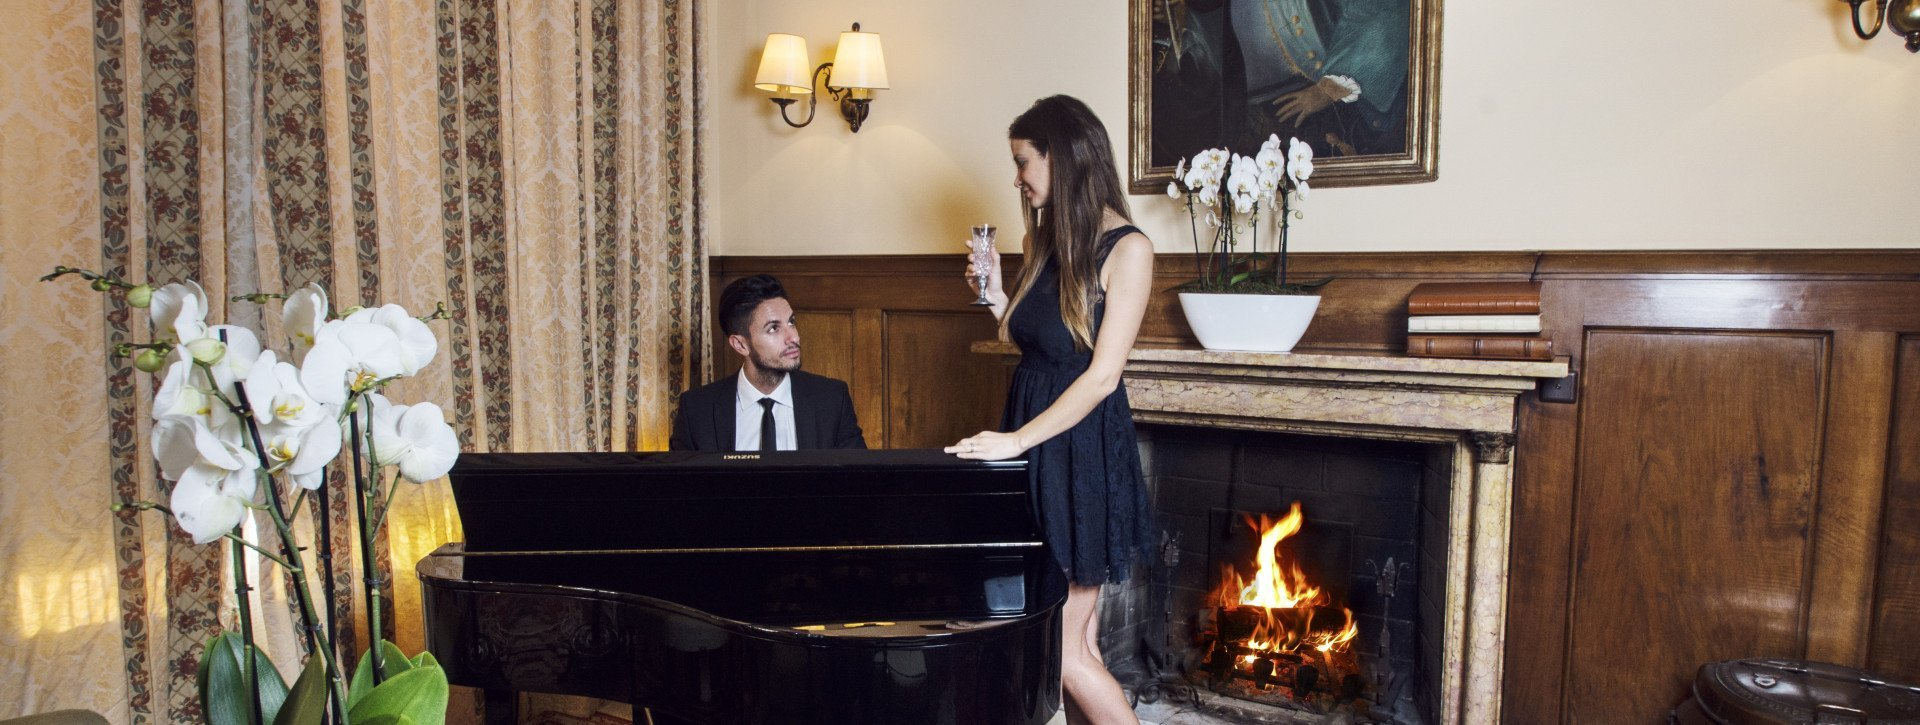 A young man plays piano while the woman is listening to him